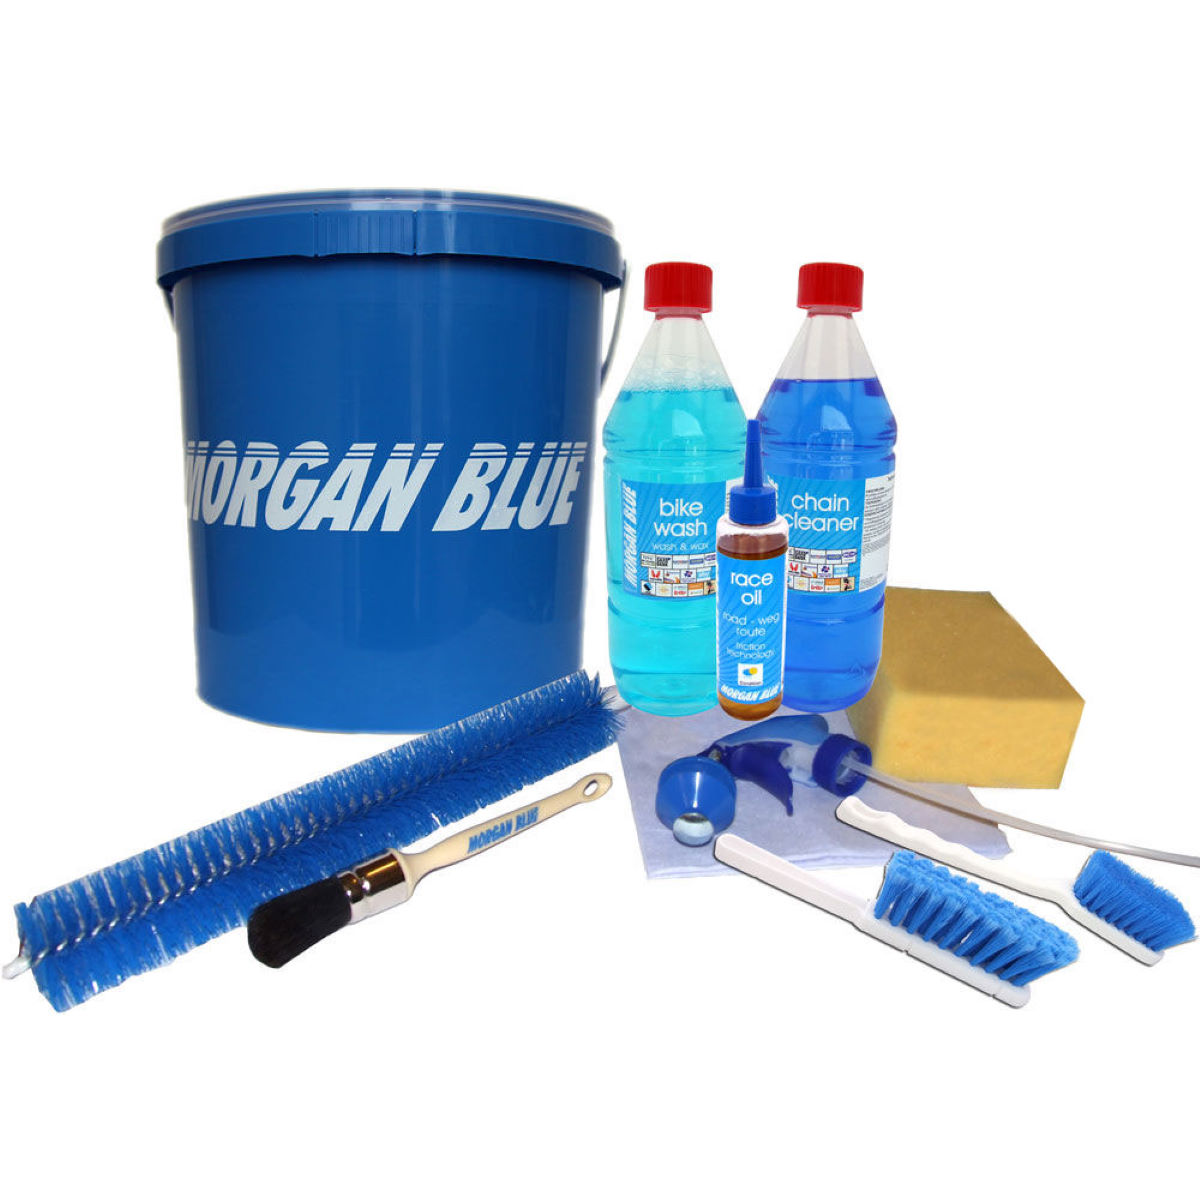 Morgan Blue Complete Maintenance Kit with Bucket